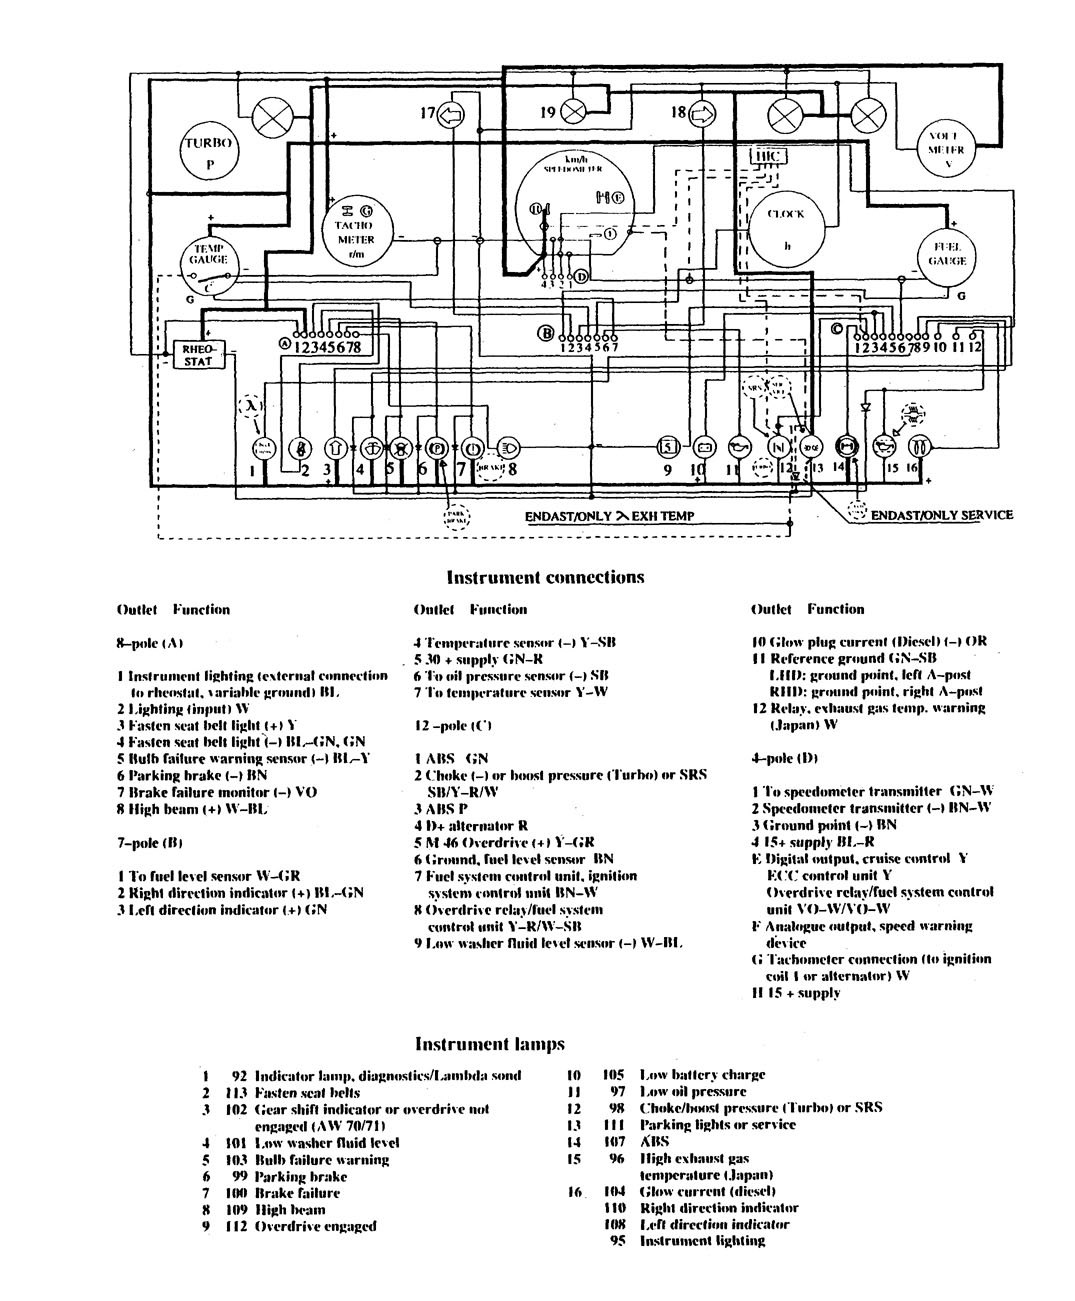 1998 Volvo V70 Fuse Diagram Free Wiring For You 740 Diagrams 98 S70 Glt Engine Front Brakes